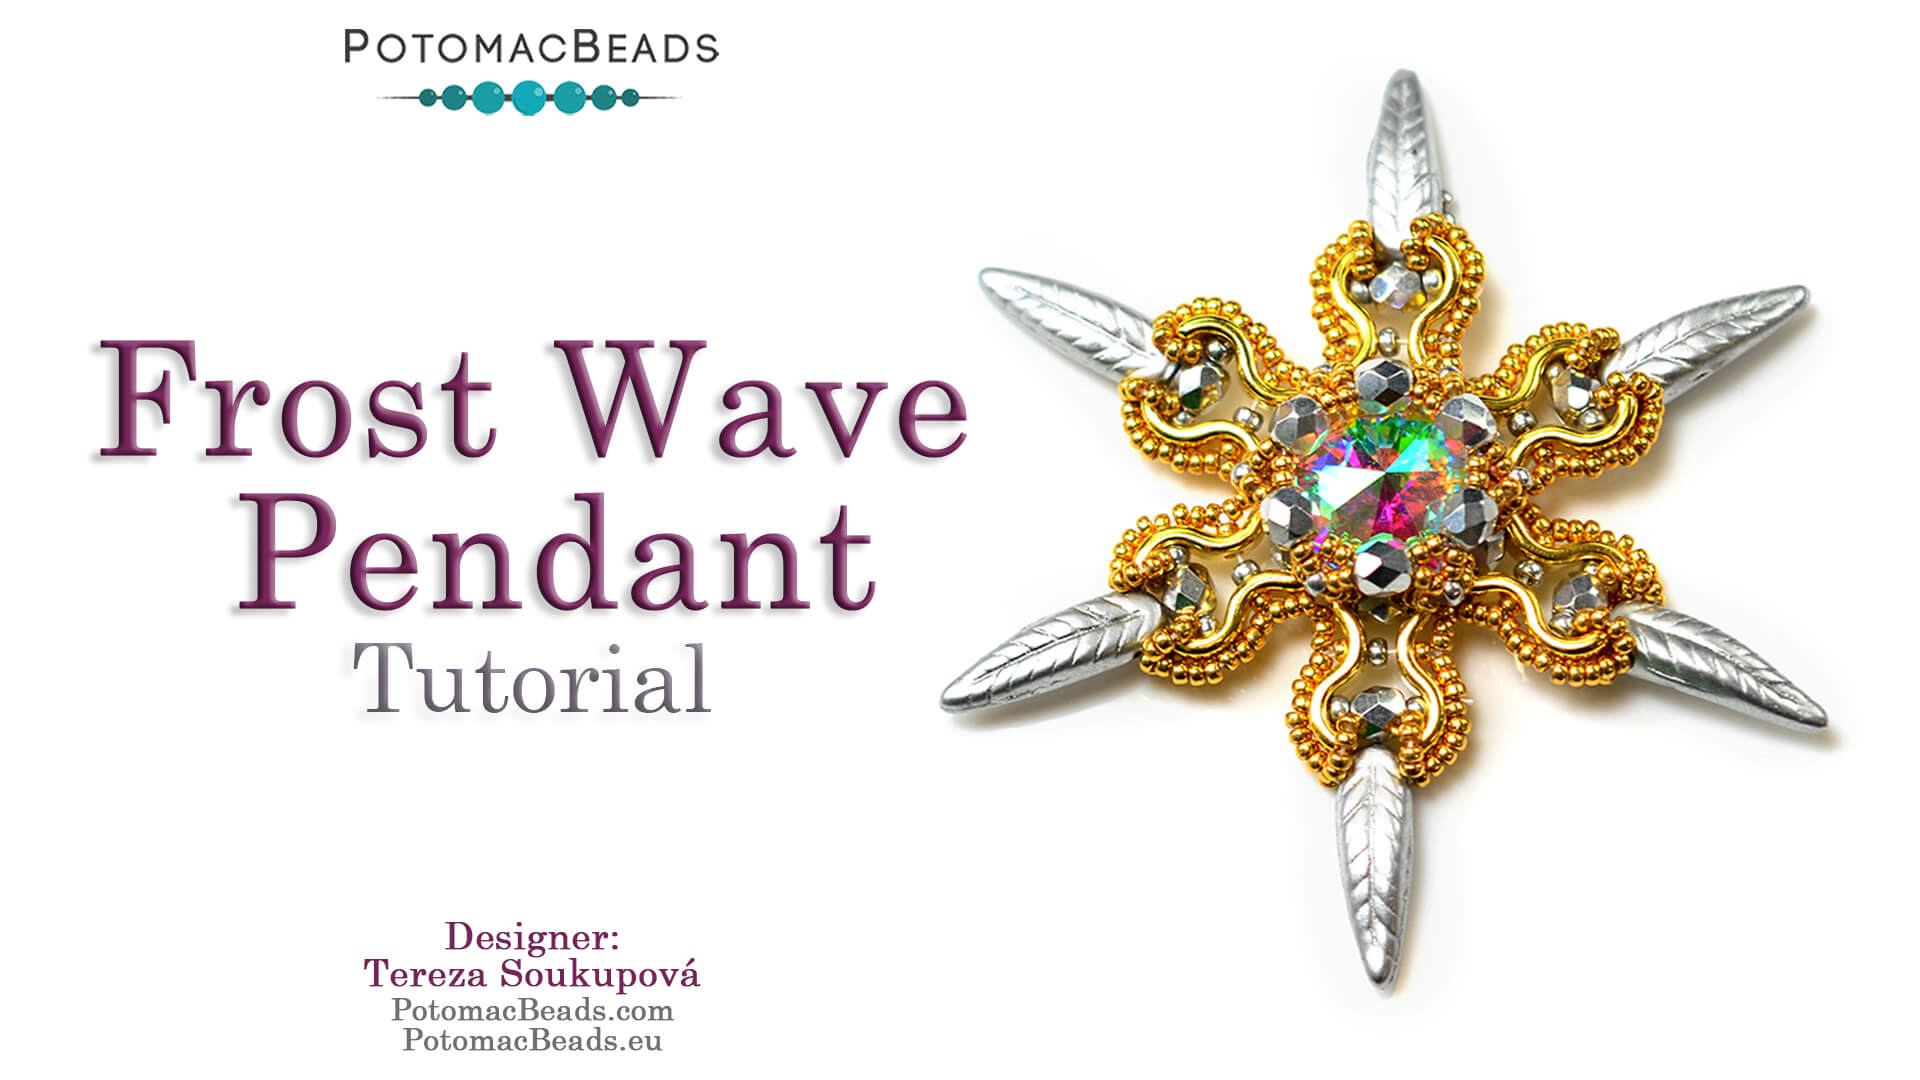 How to Bead / Videos Sorted by Beads / All Other Bead Videos / Frost Wave Pendant Tutorial